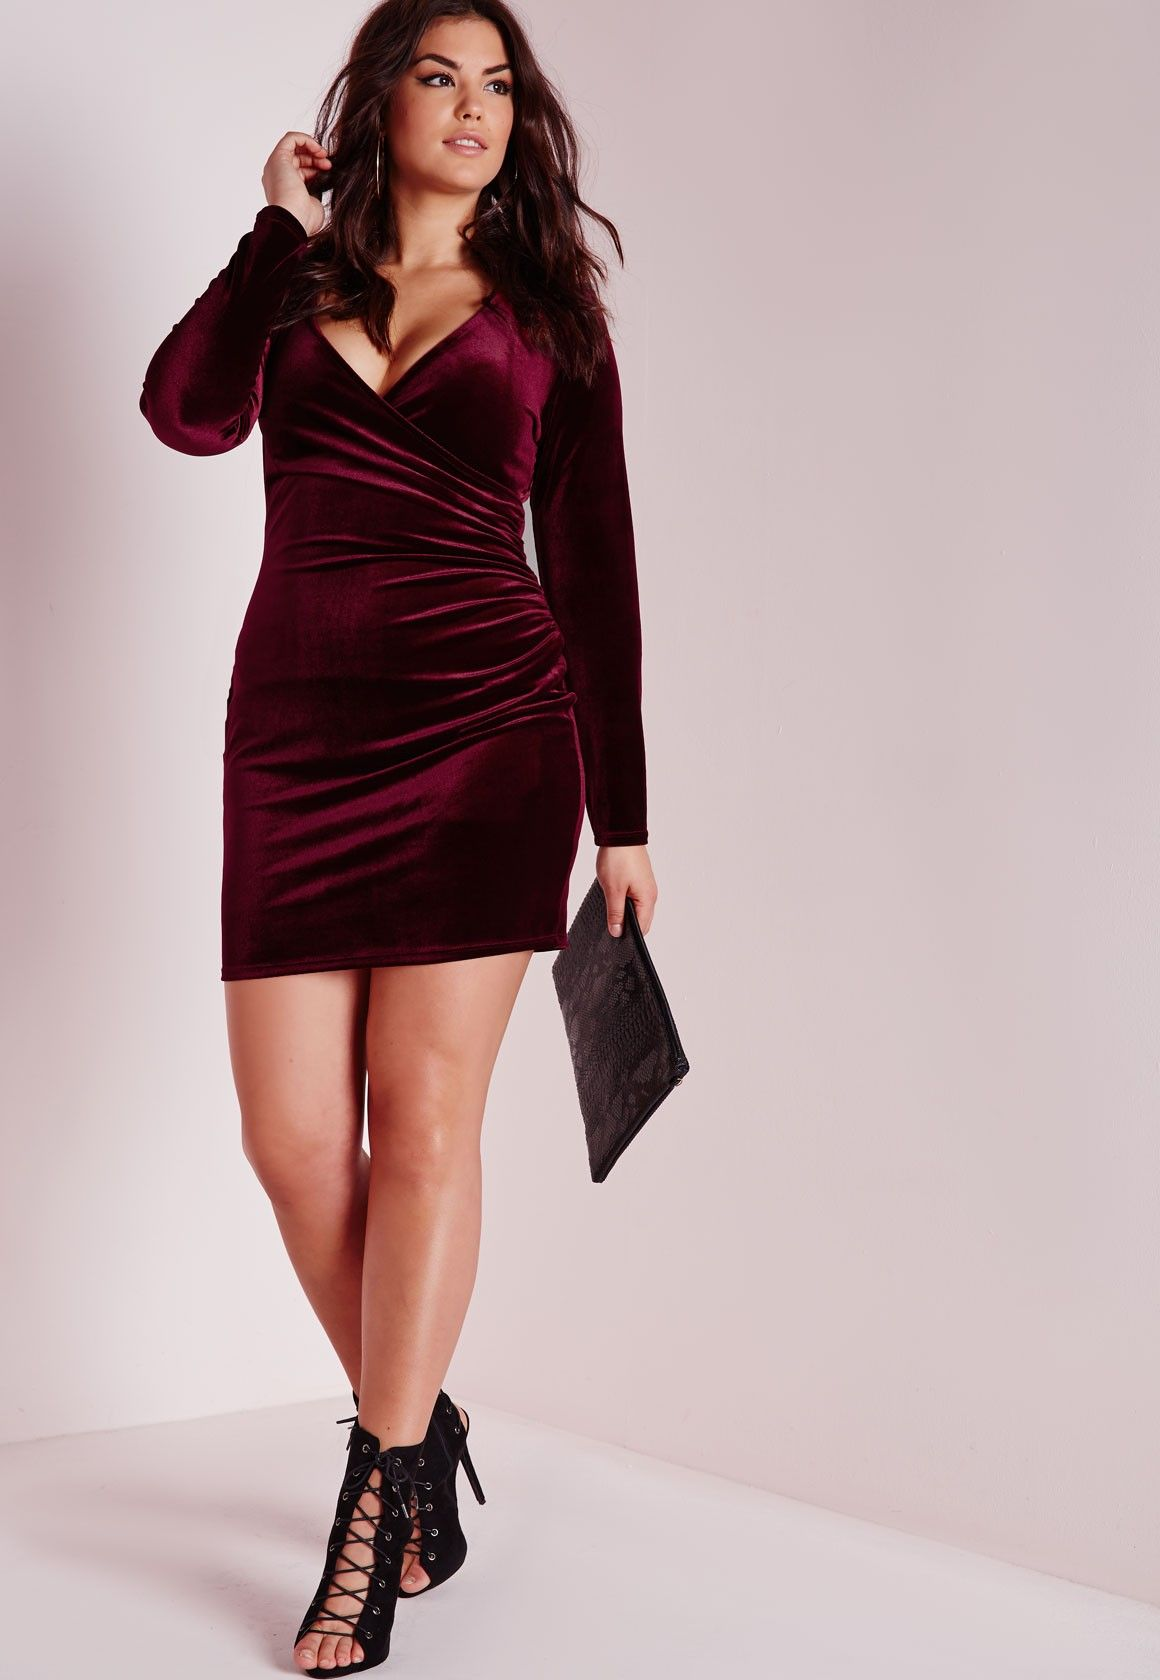 Missguided - Plus Size Velvet Wrap Front Dress Burgundy | Dresses ...